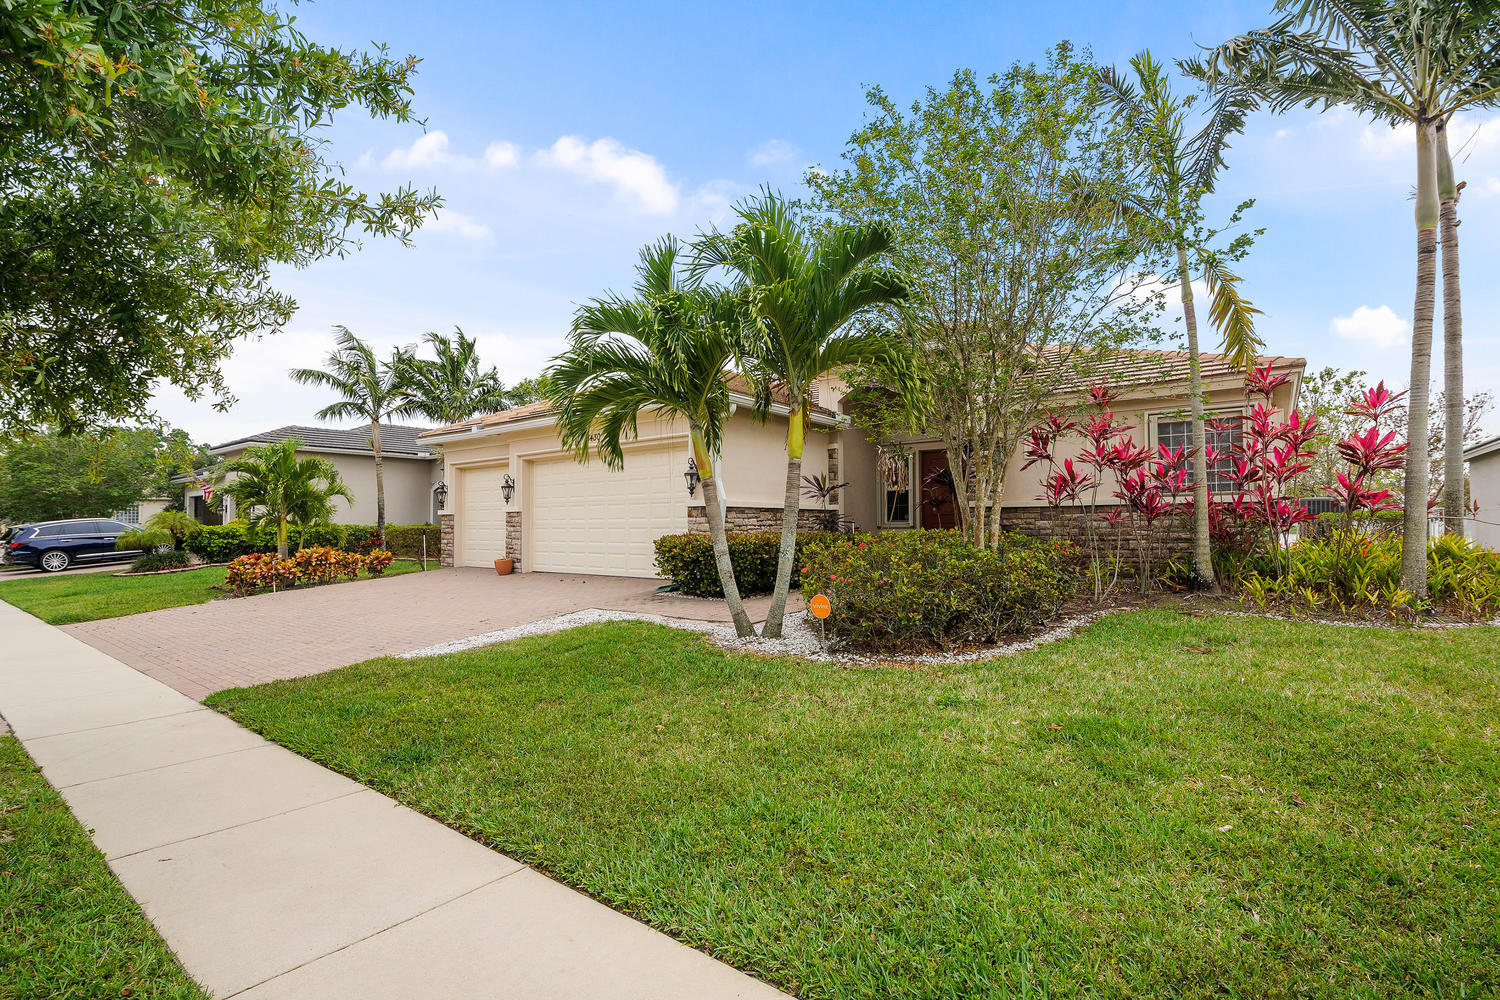 8430 Butler Greenwood Drive, Royal Palm Beach, Florida